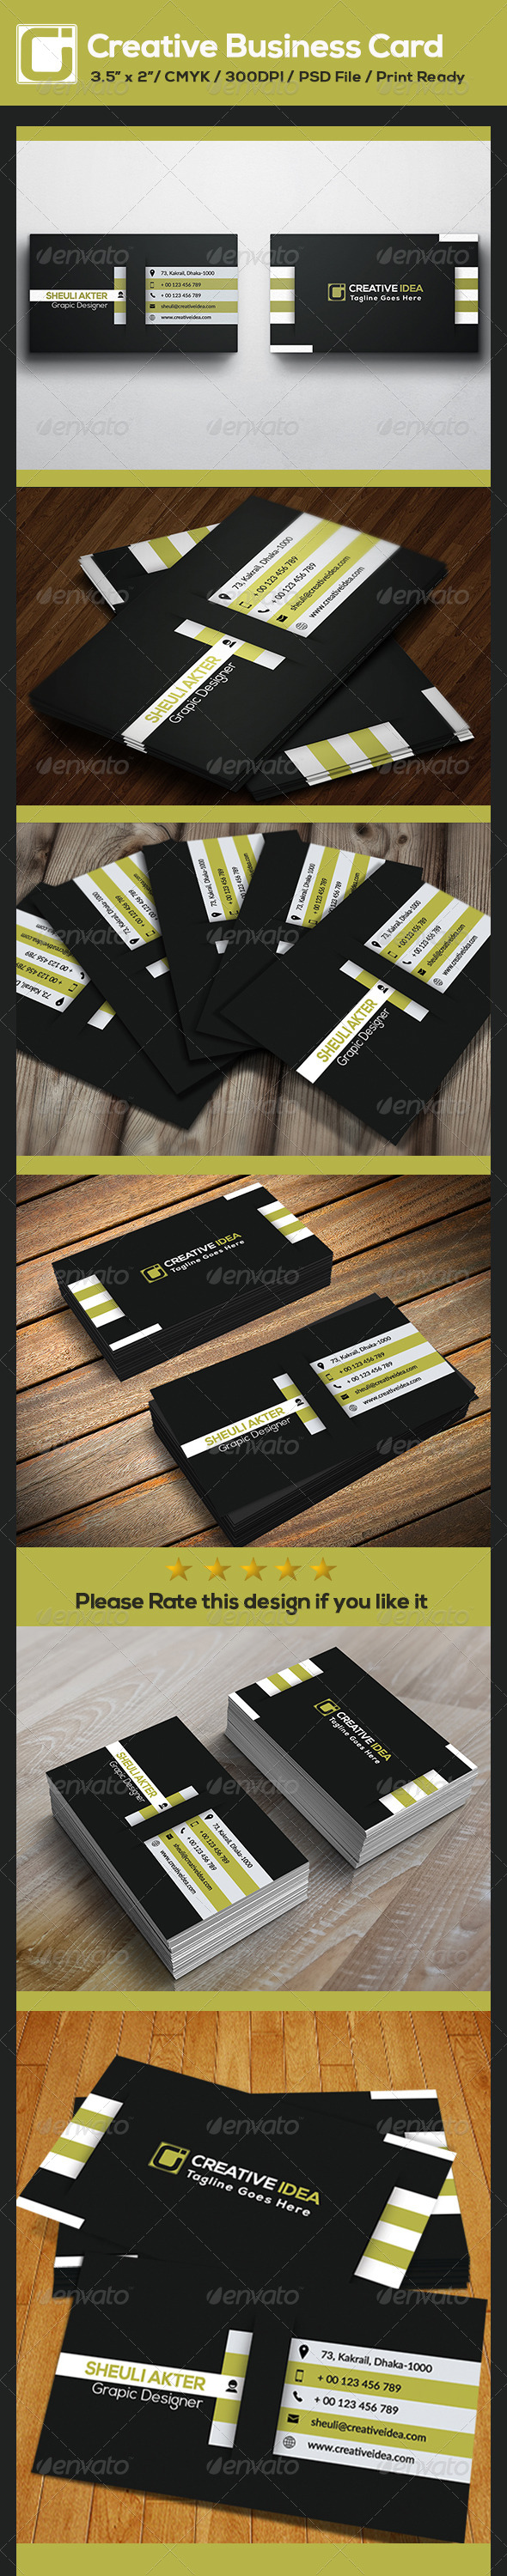 GraphicRiver Creative Business Card 8719075